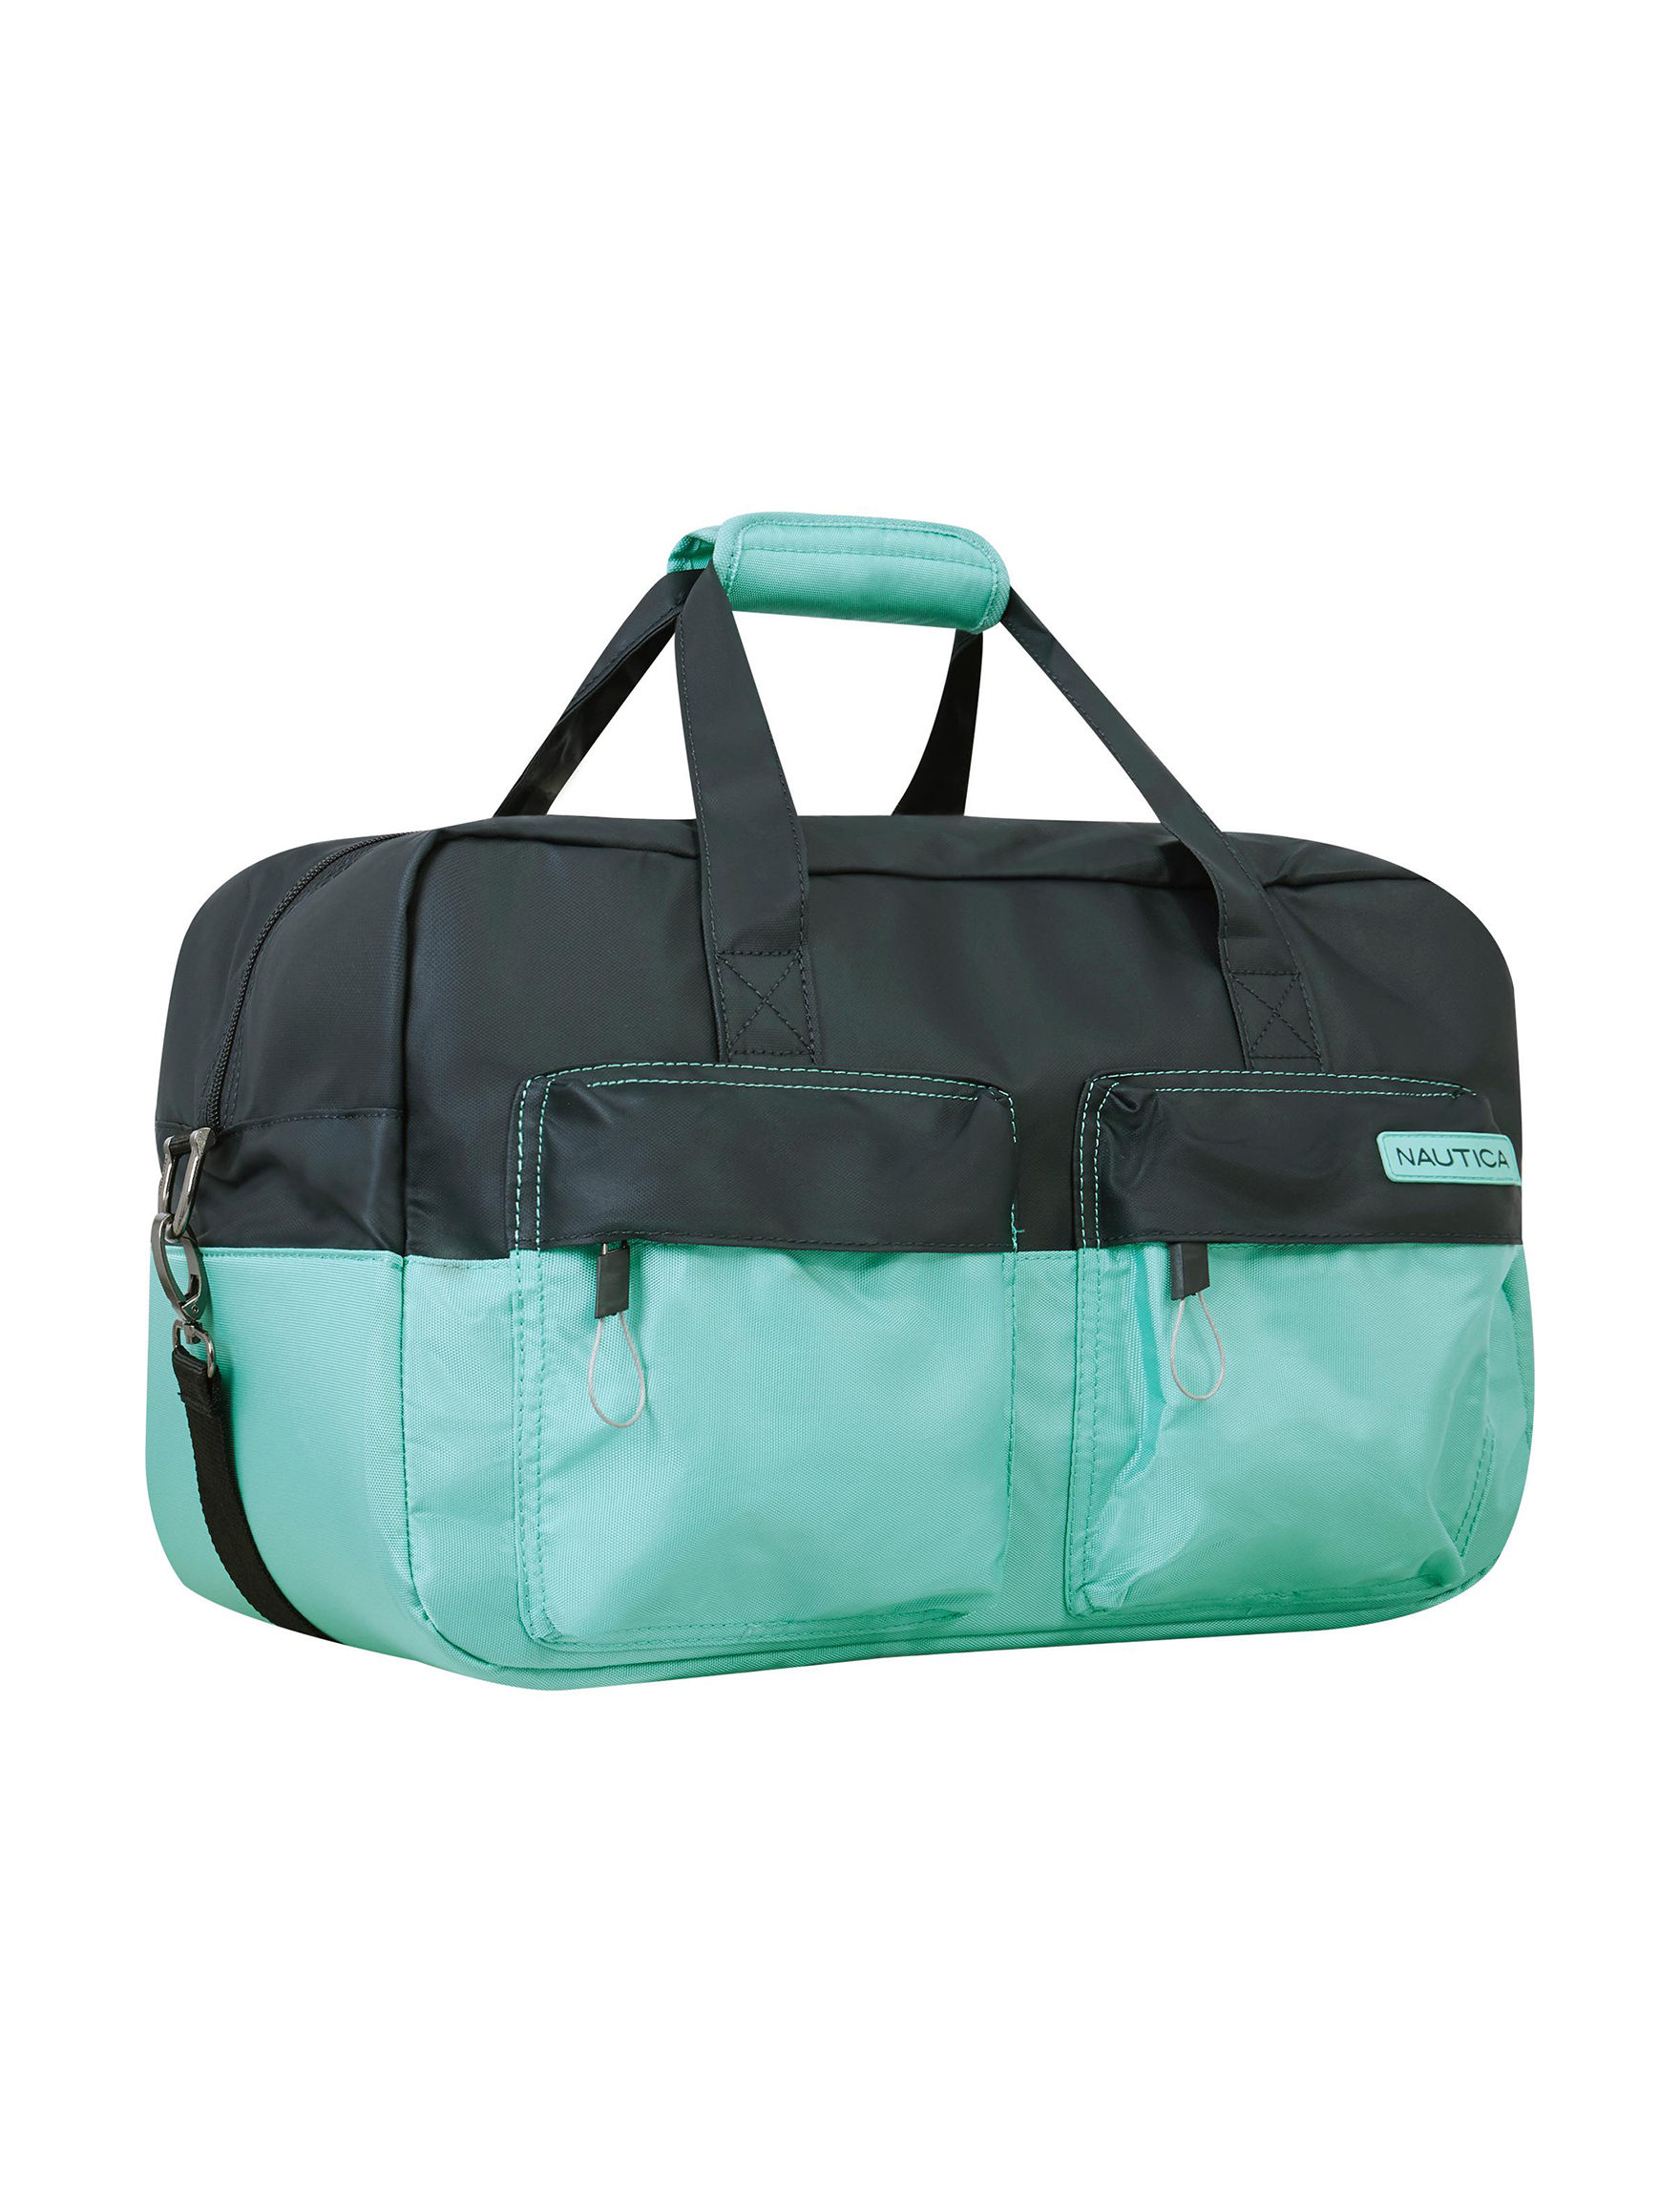 Nautica Navy / Blue Carry On Luggage Duffle Bags Weekend Bags